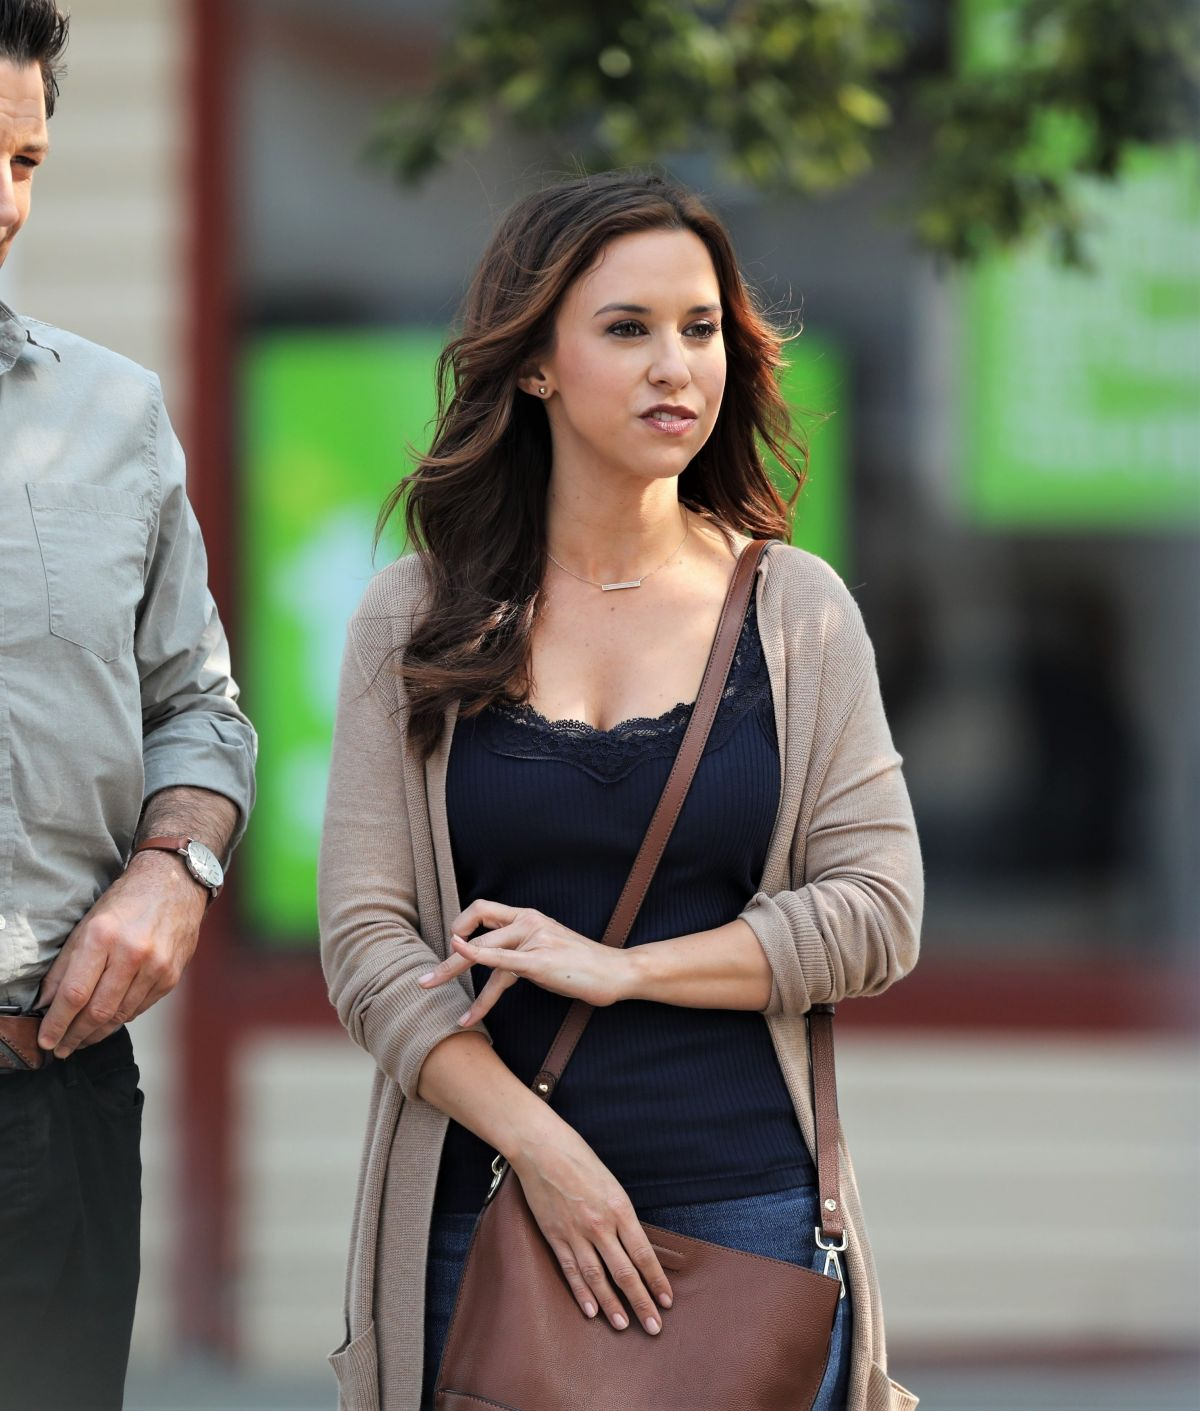 Lacey Chabert Wedding.Lacey Chabert On The Set Of Aall Of My Heart The Wedding In